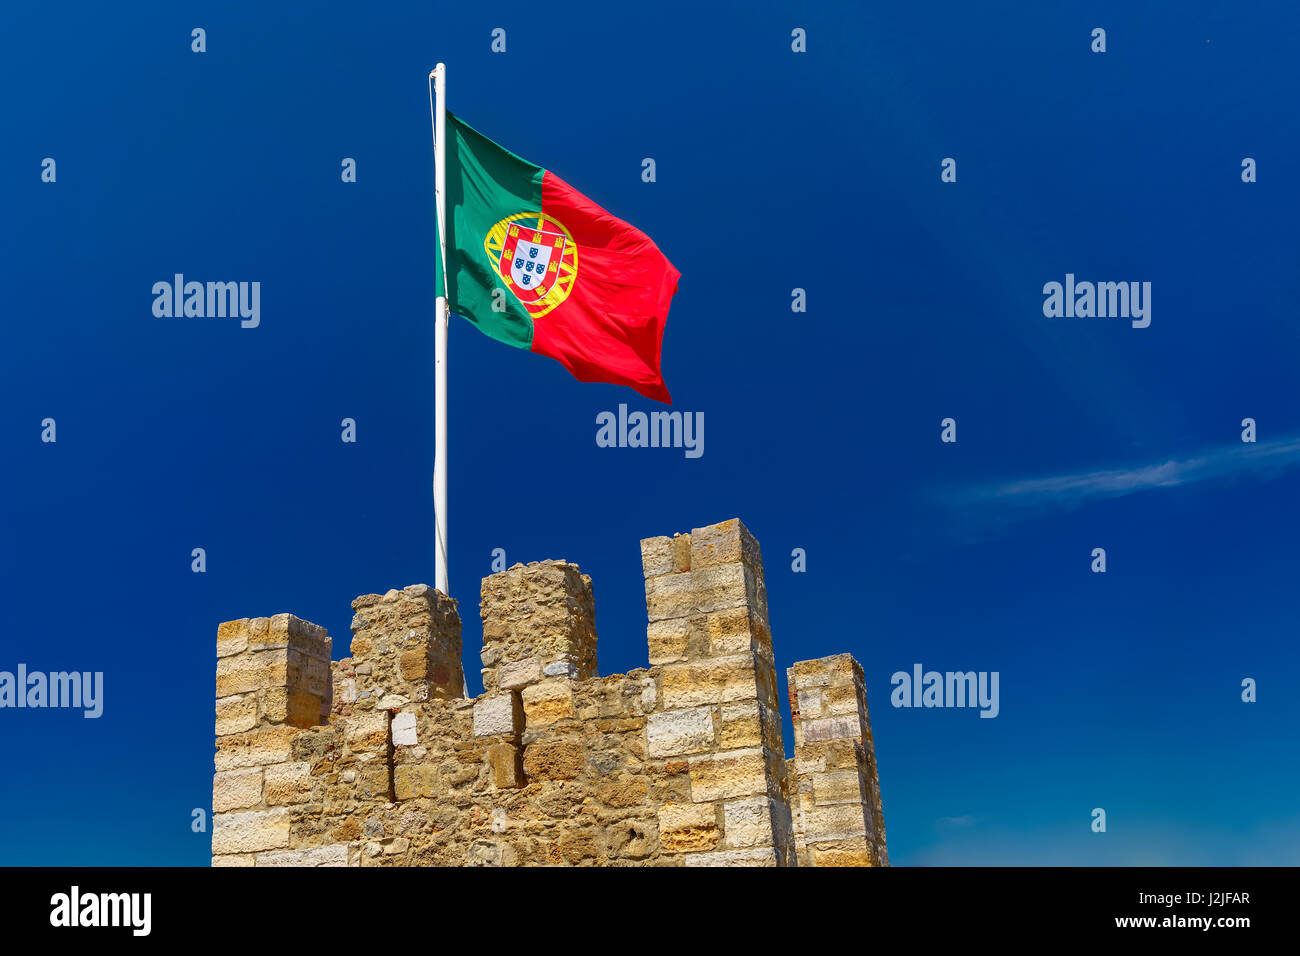 Portuguese flag on fortress wall, Lisbon, Portugal - Stock Image